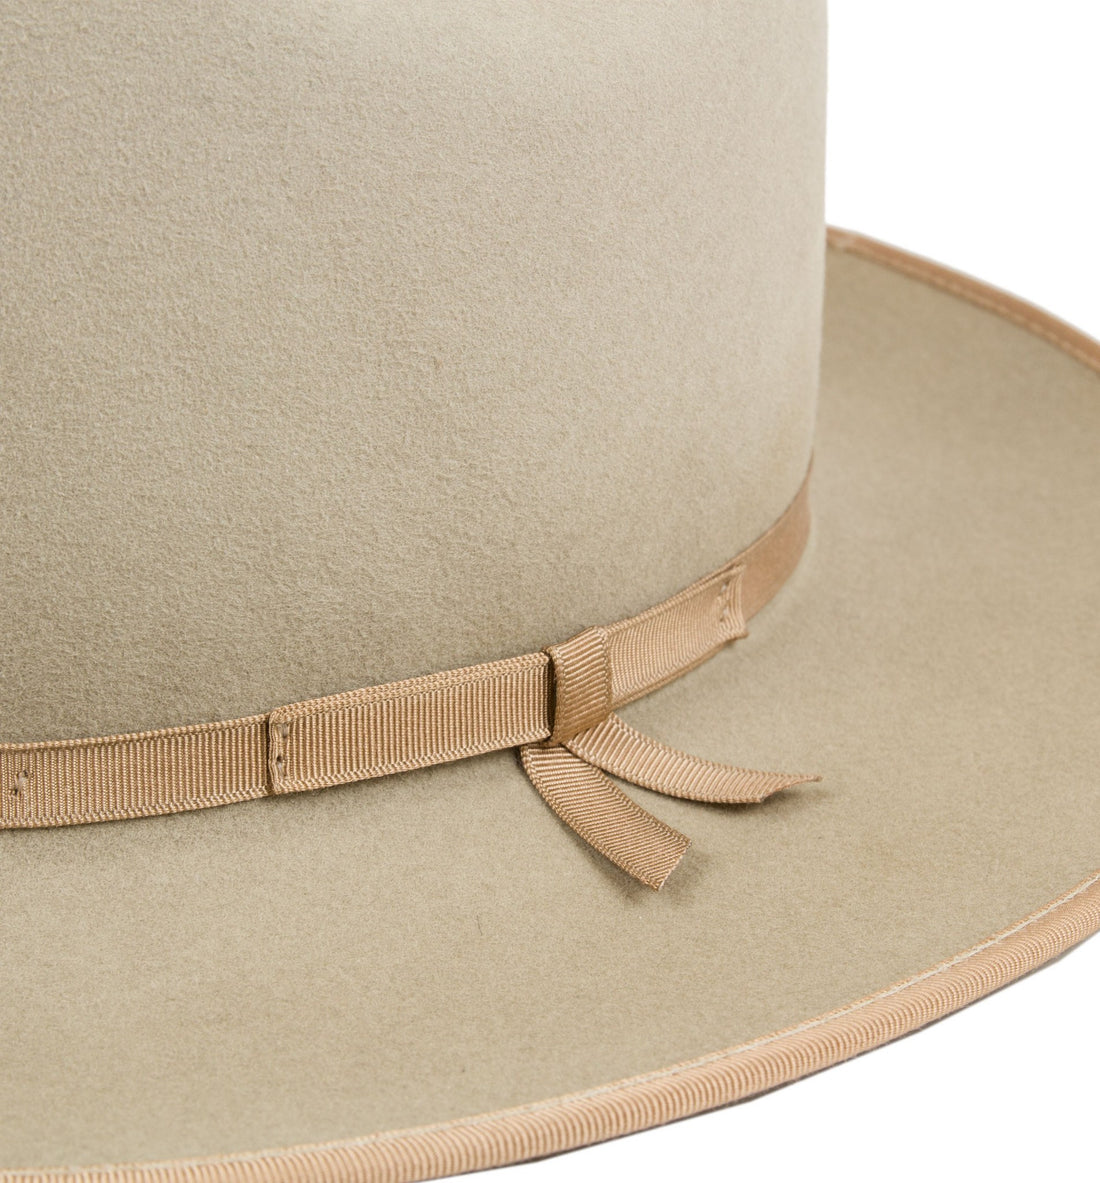 Akron Hat - Accessories: Headwear: Men's - Iron and Resin